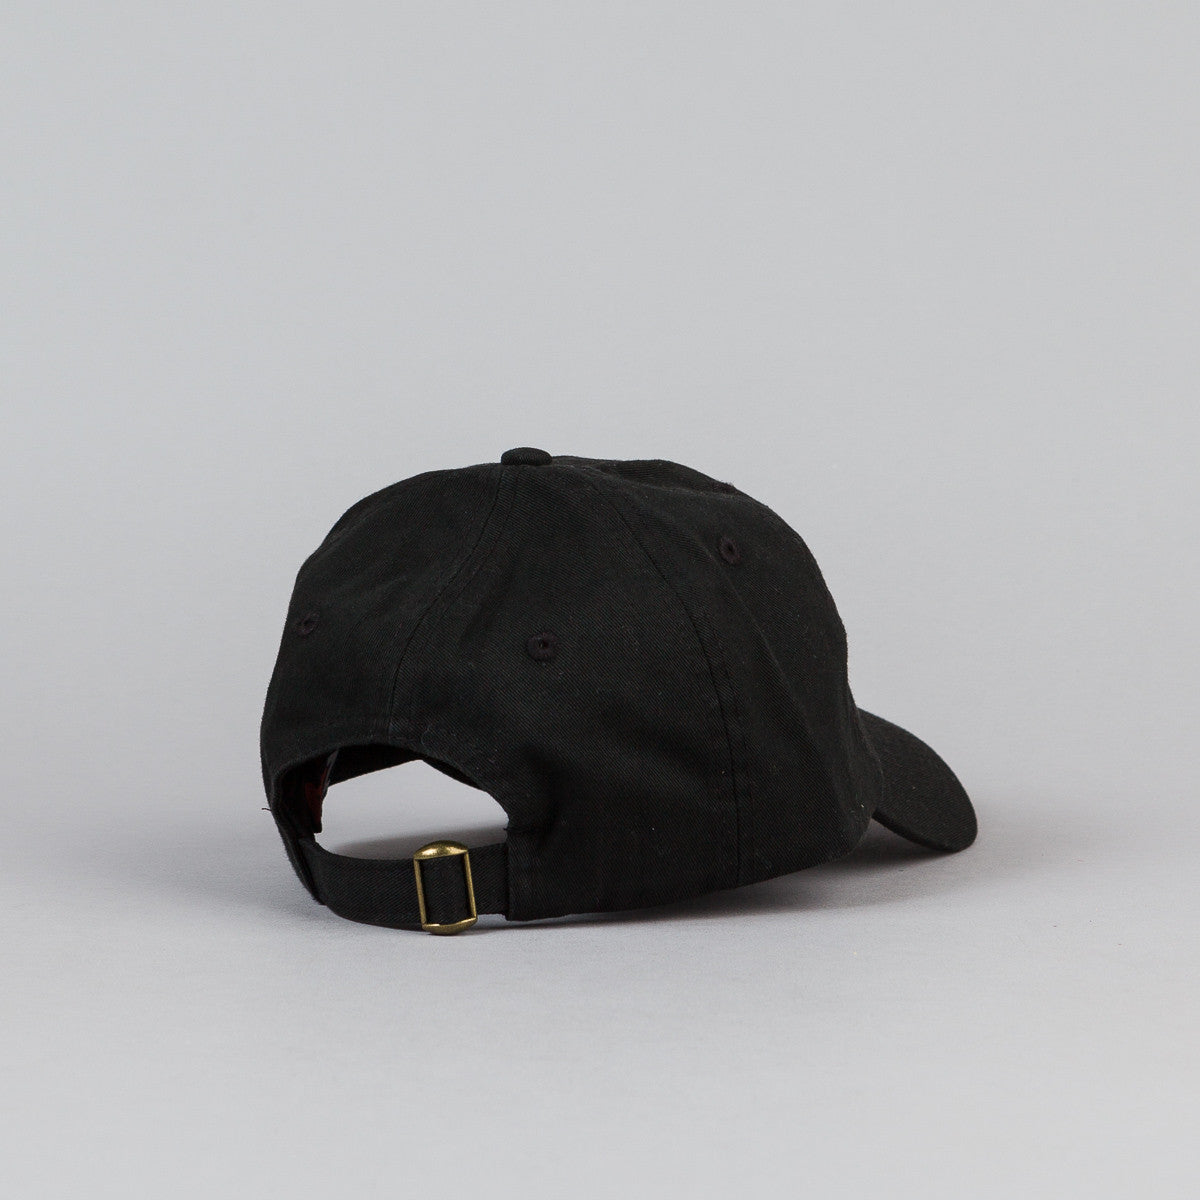 Pizza Skateboards Swerve Delivery Boy Cap - Black